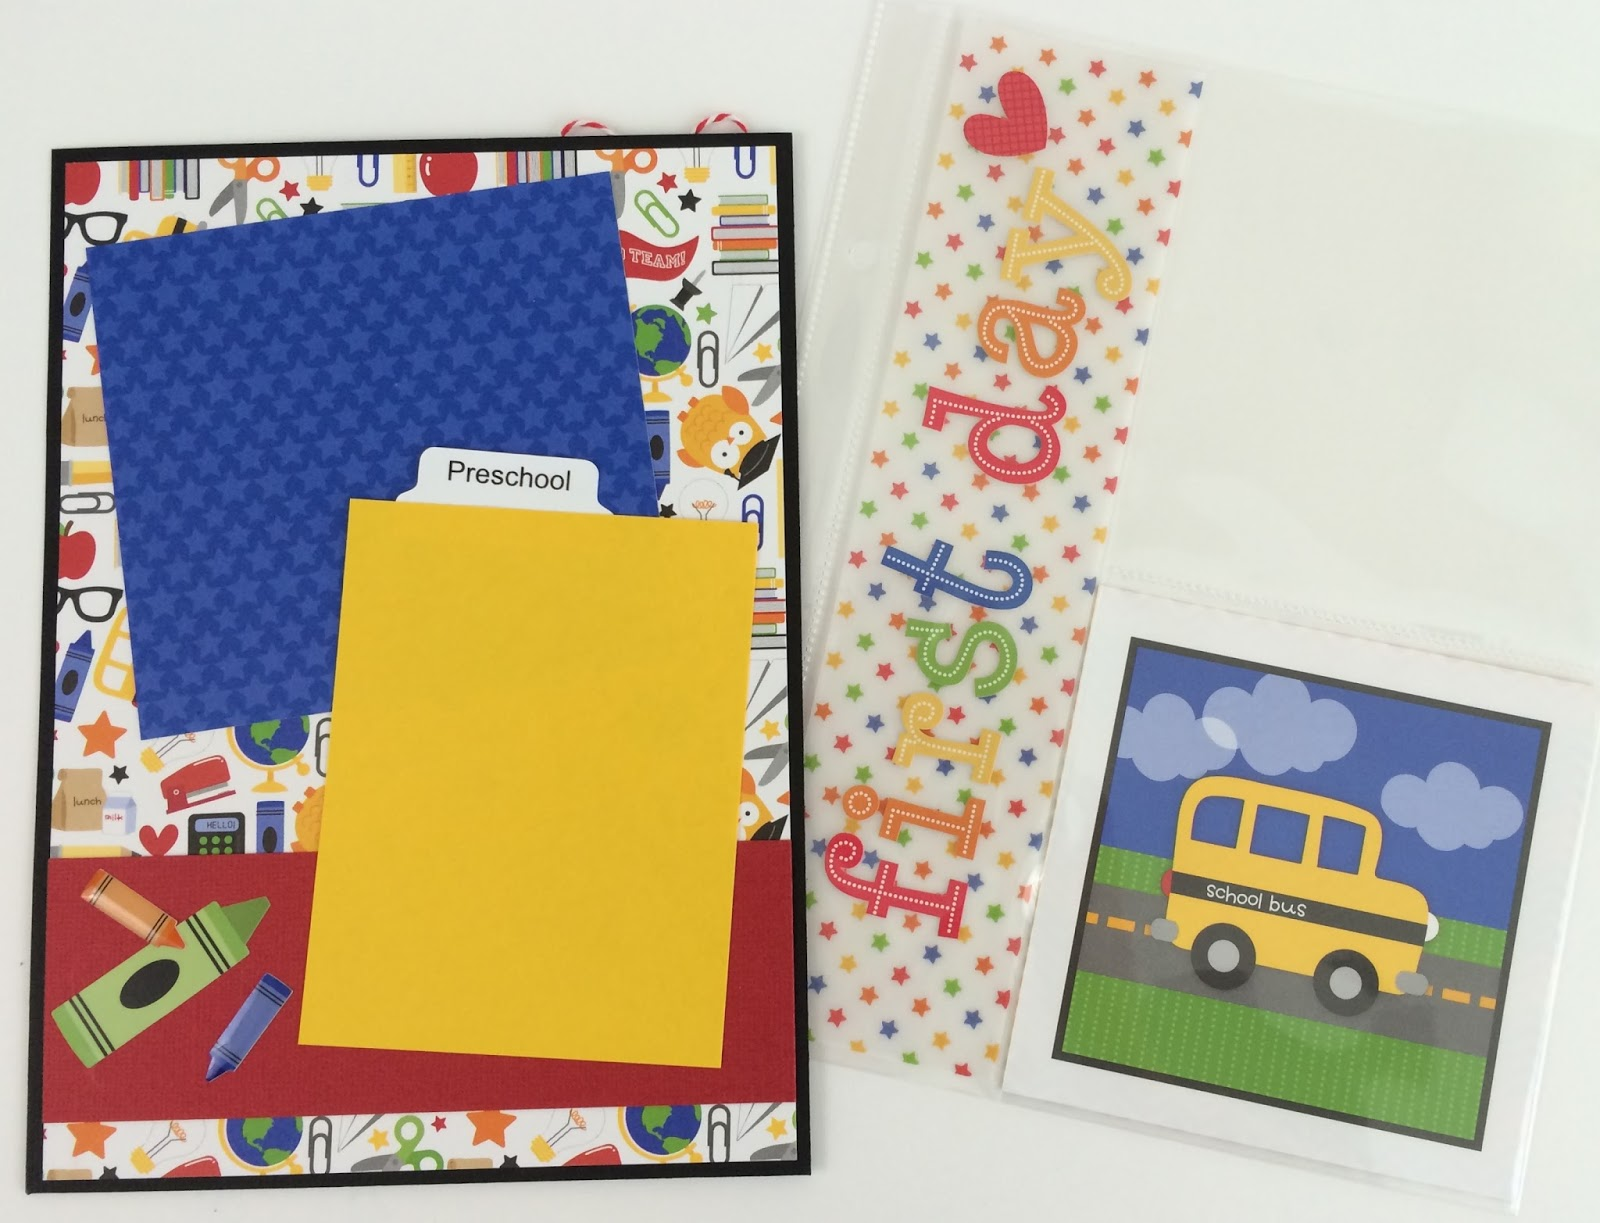 How to scrapbook school years - Fun Primary Colors Titles And Phrases And Lots Of Embellishments These Are Just A Few Of The Things That Adorn The Pages Of This Fun School Memory